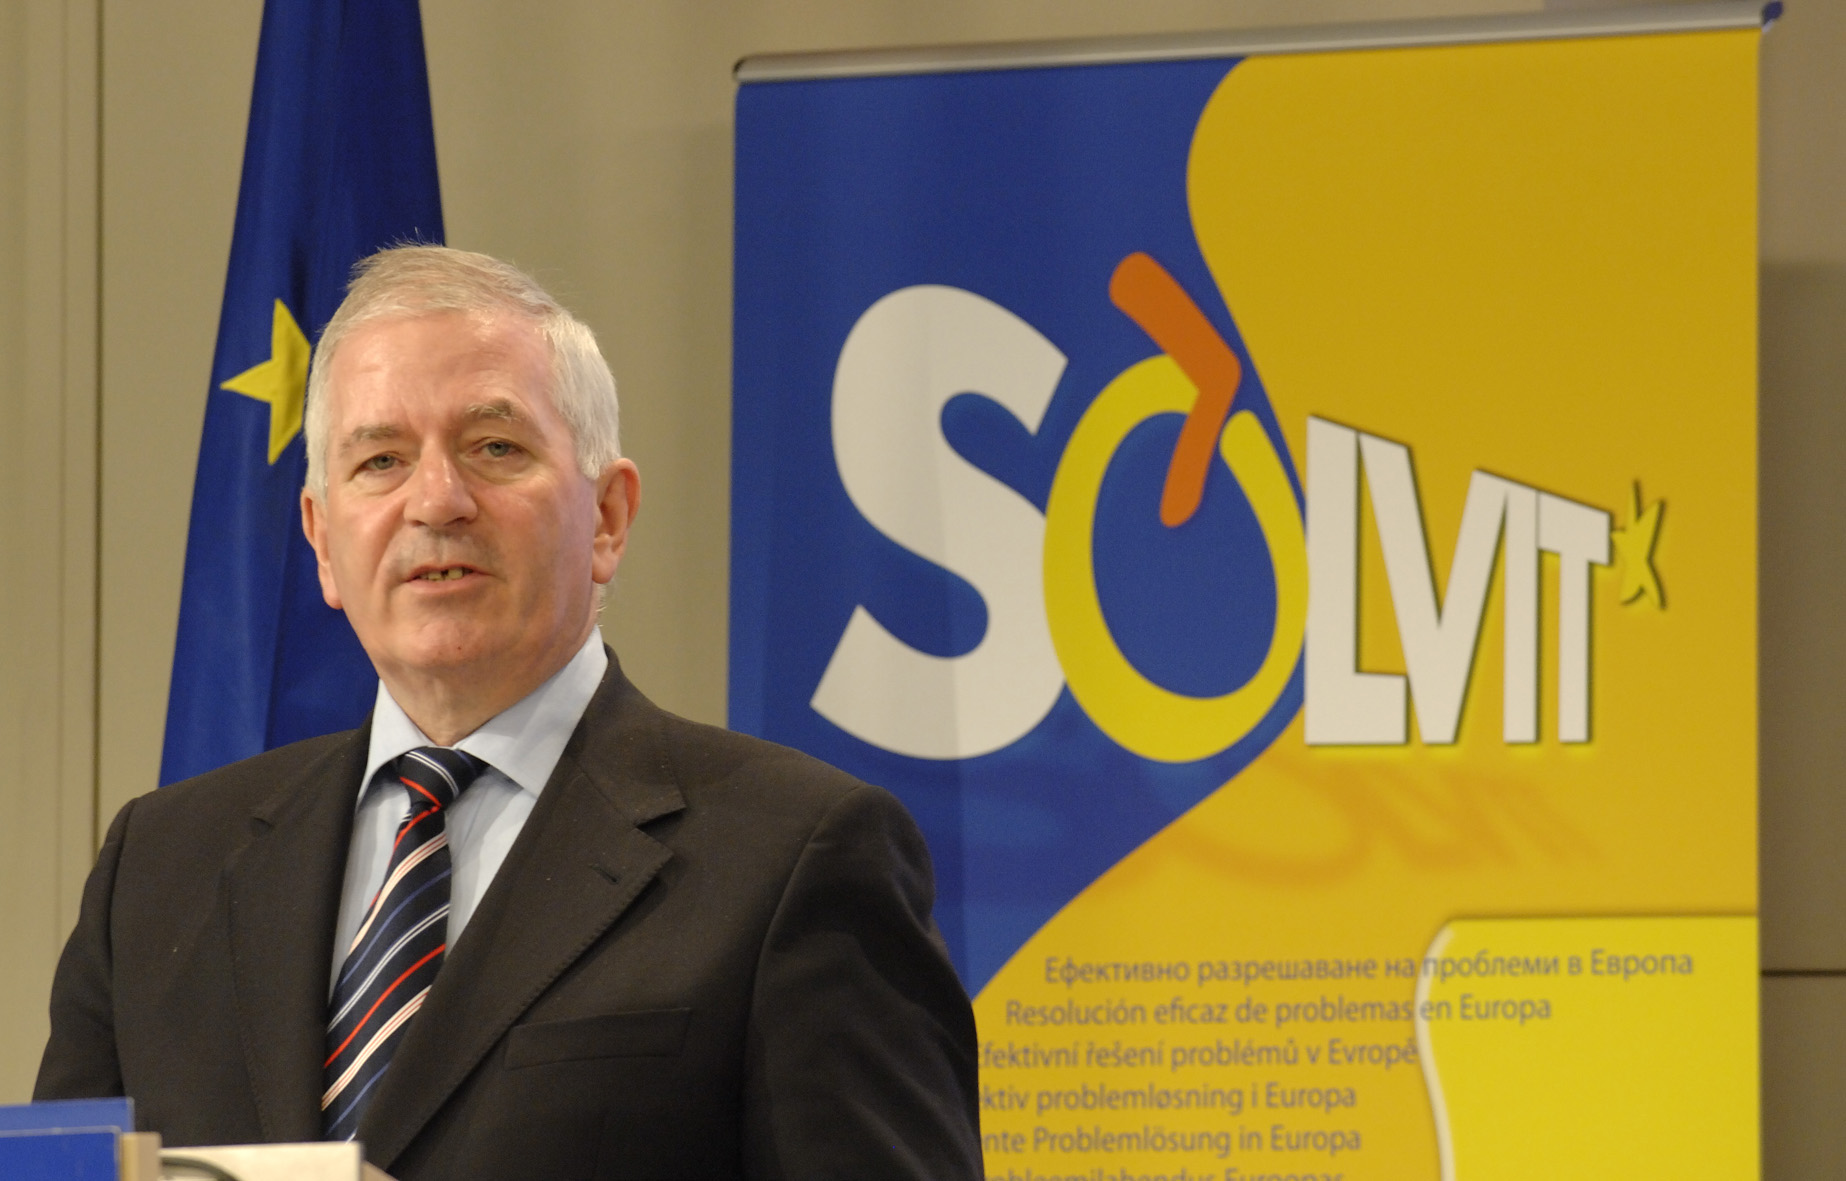 Press conference with Charlie McCreevy, Member of the EC, on the 5th anniversary of Solvit